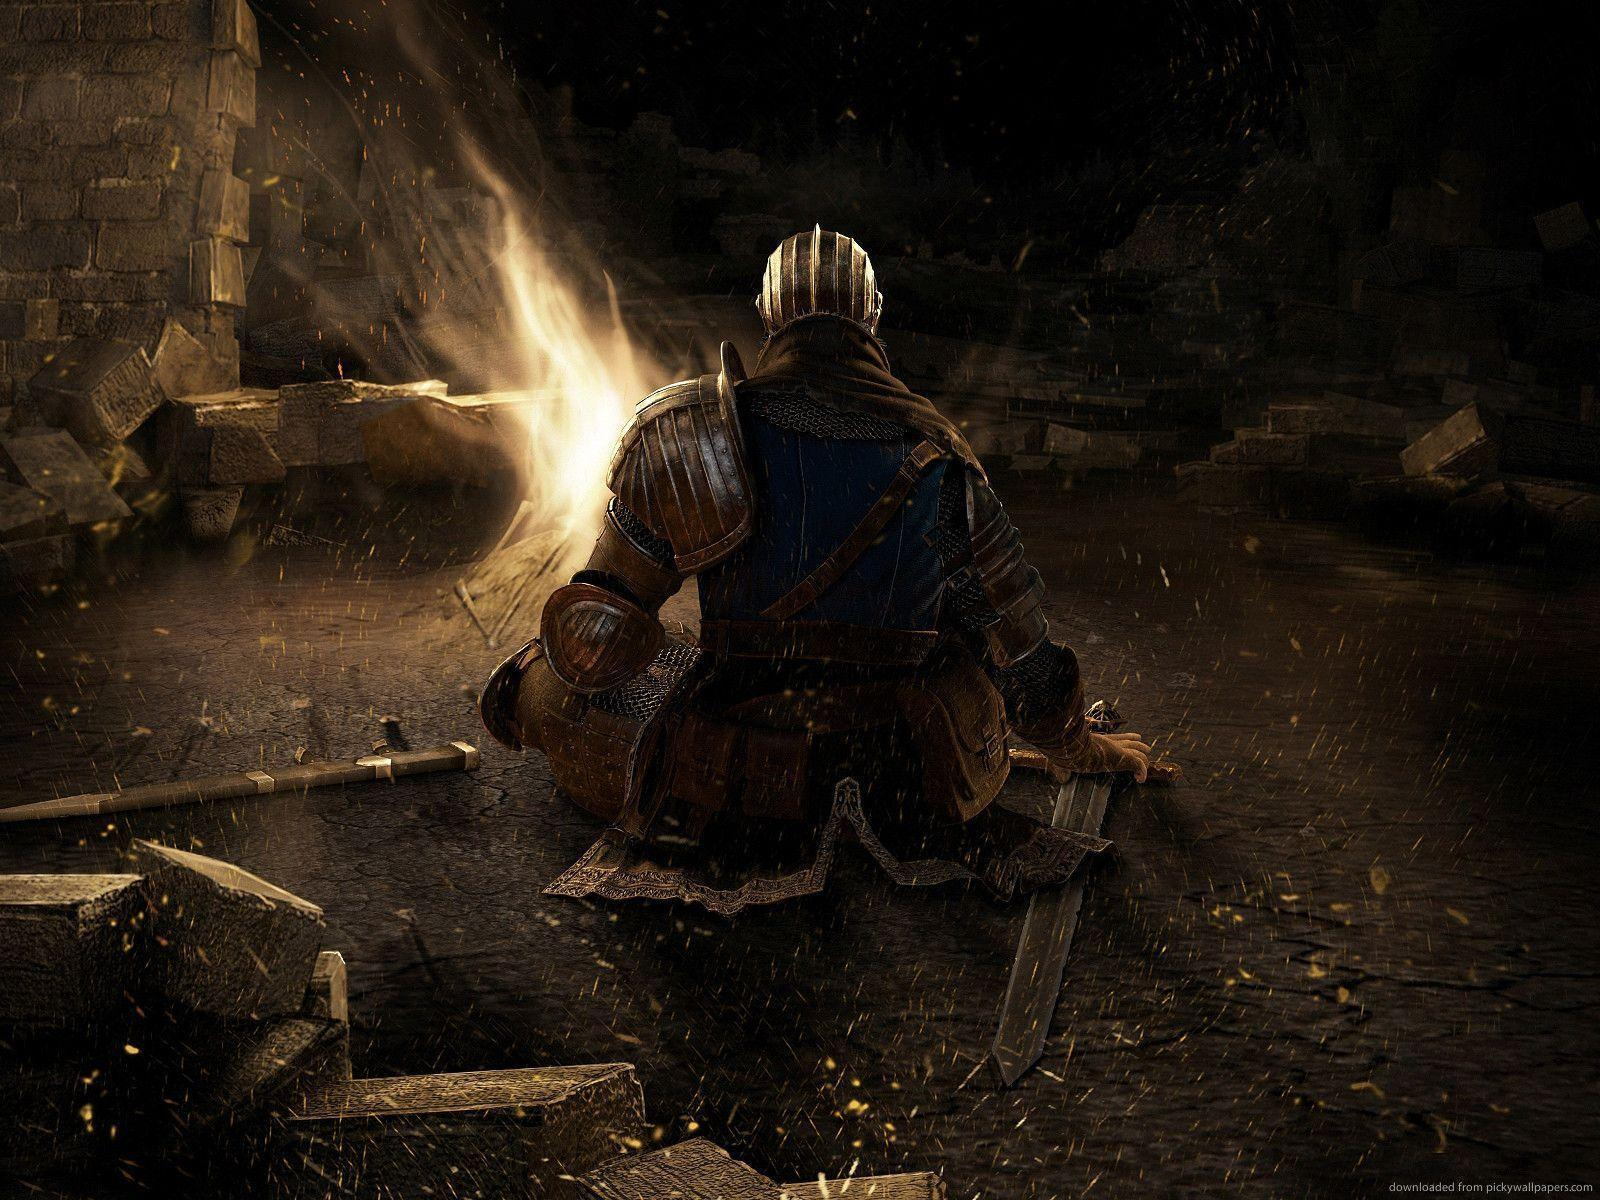 Download 1600x1200 Dark Souls Campfire Wallpapers